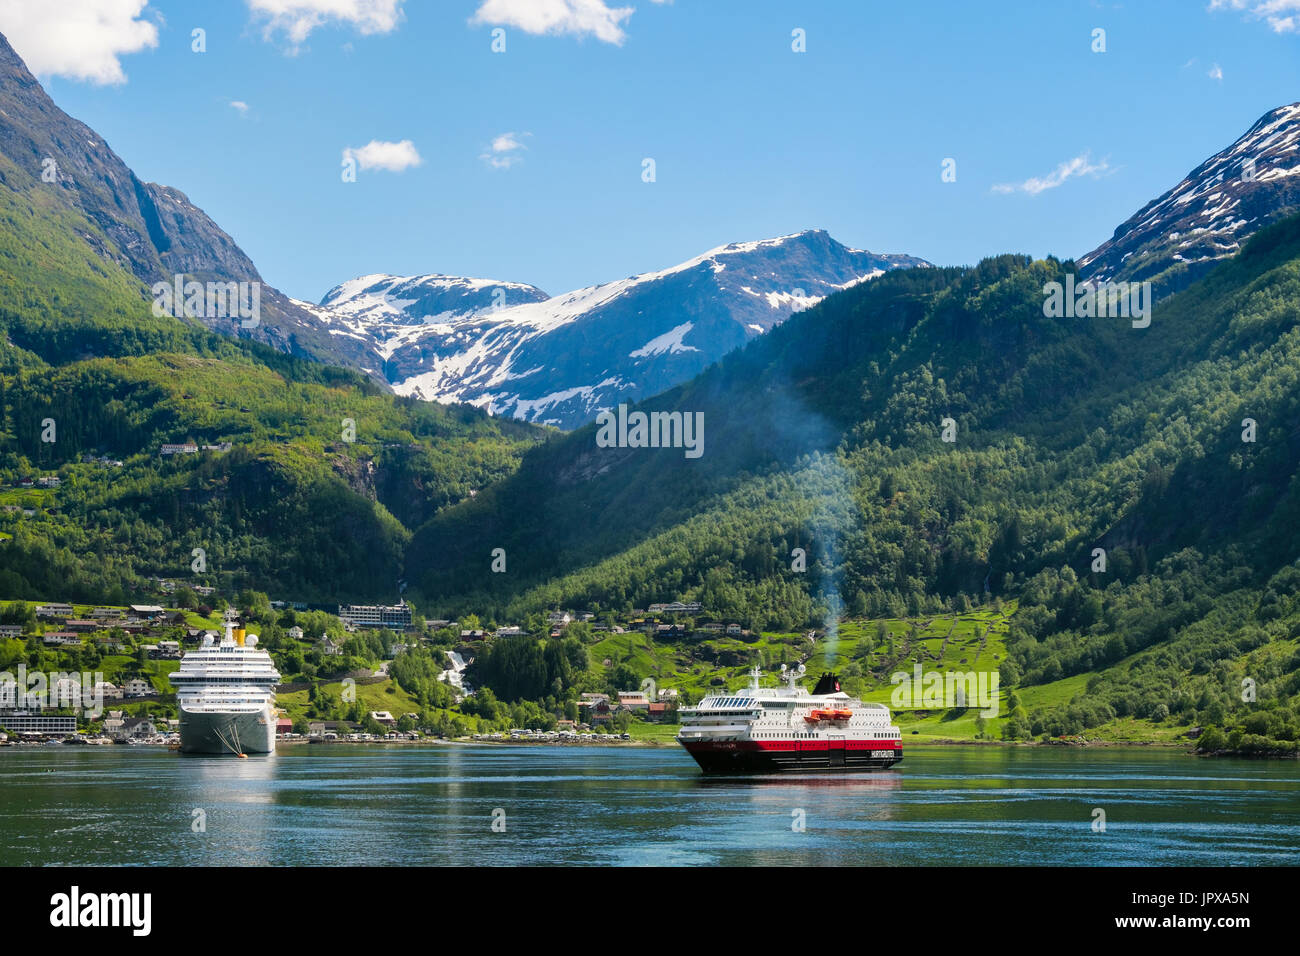 Cruise ships ocean liner and Hurtigruten cruise ship Polarlys in anchored offshore in summer. Geirangerfjorden or Geiranger Fjord Geiranger Norway - Stock Image